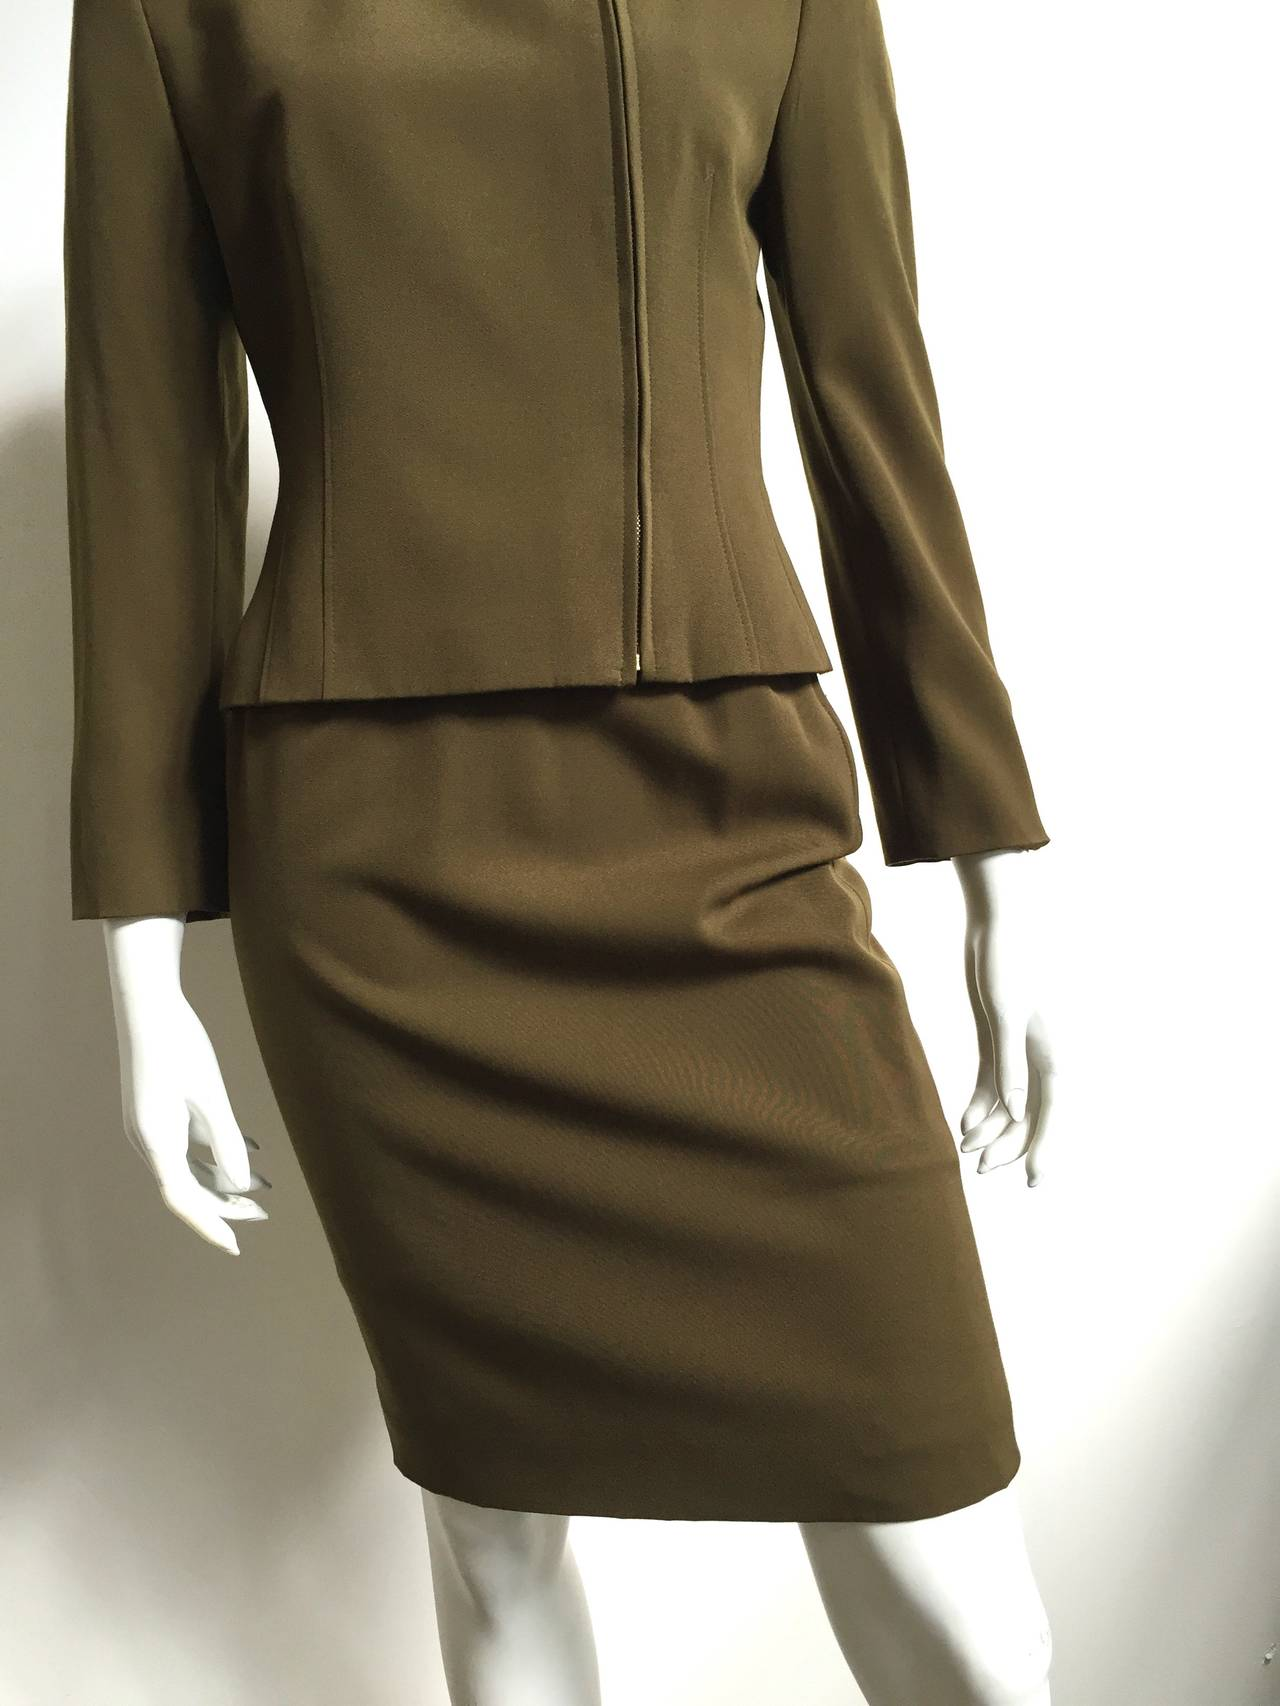 Genny by Versace Olive Skirt Suit Size 4  3